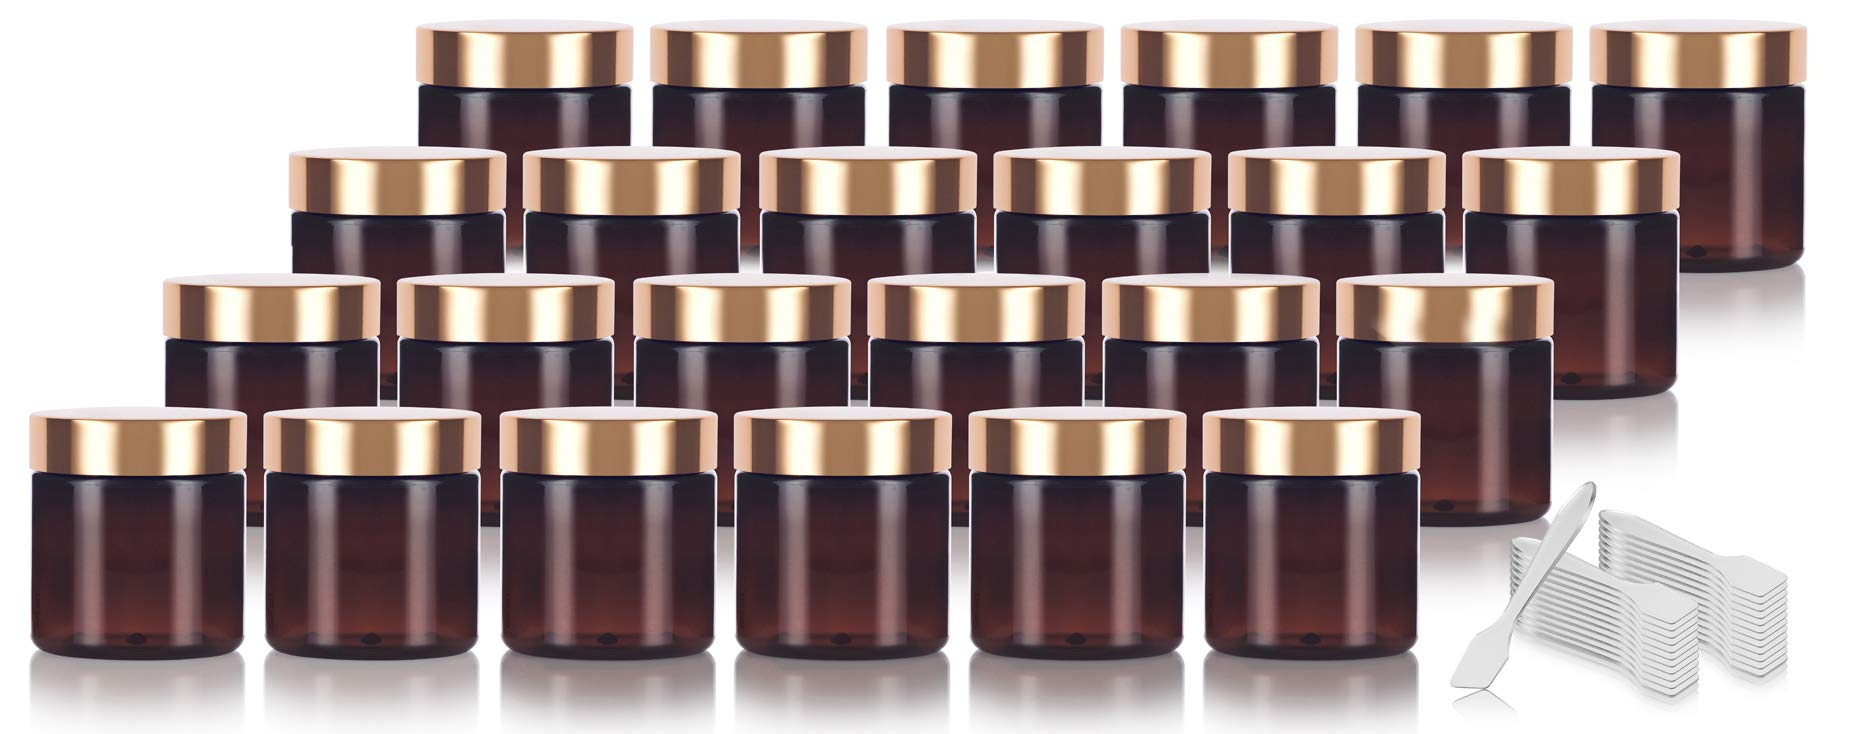 Amber PET Plastic (BPA Free) Refillable Jar with Gold Metal Overshell Lid - 4 oz (24 Pack) + Spatulas